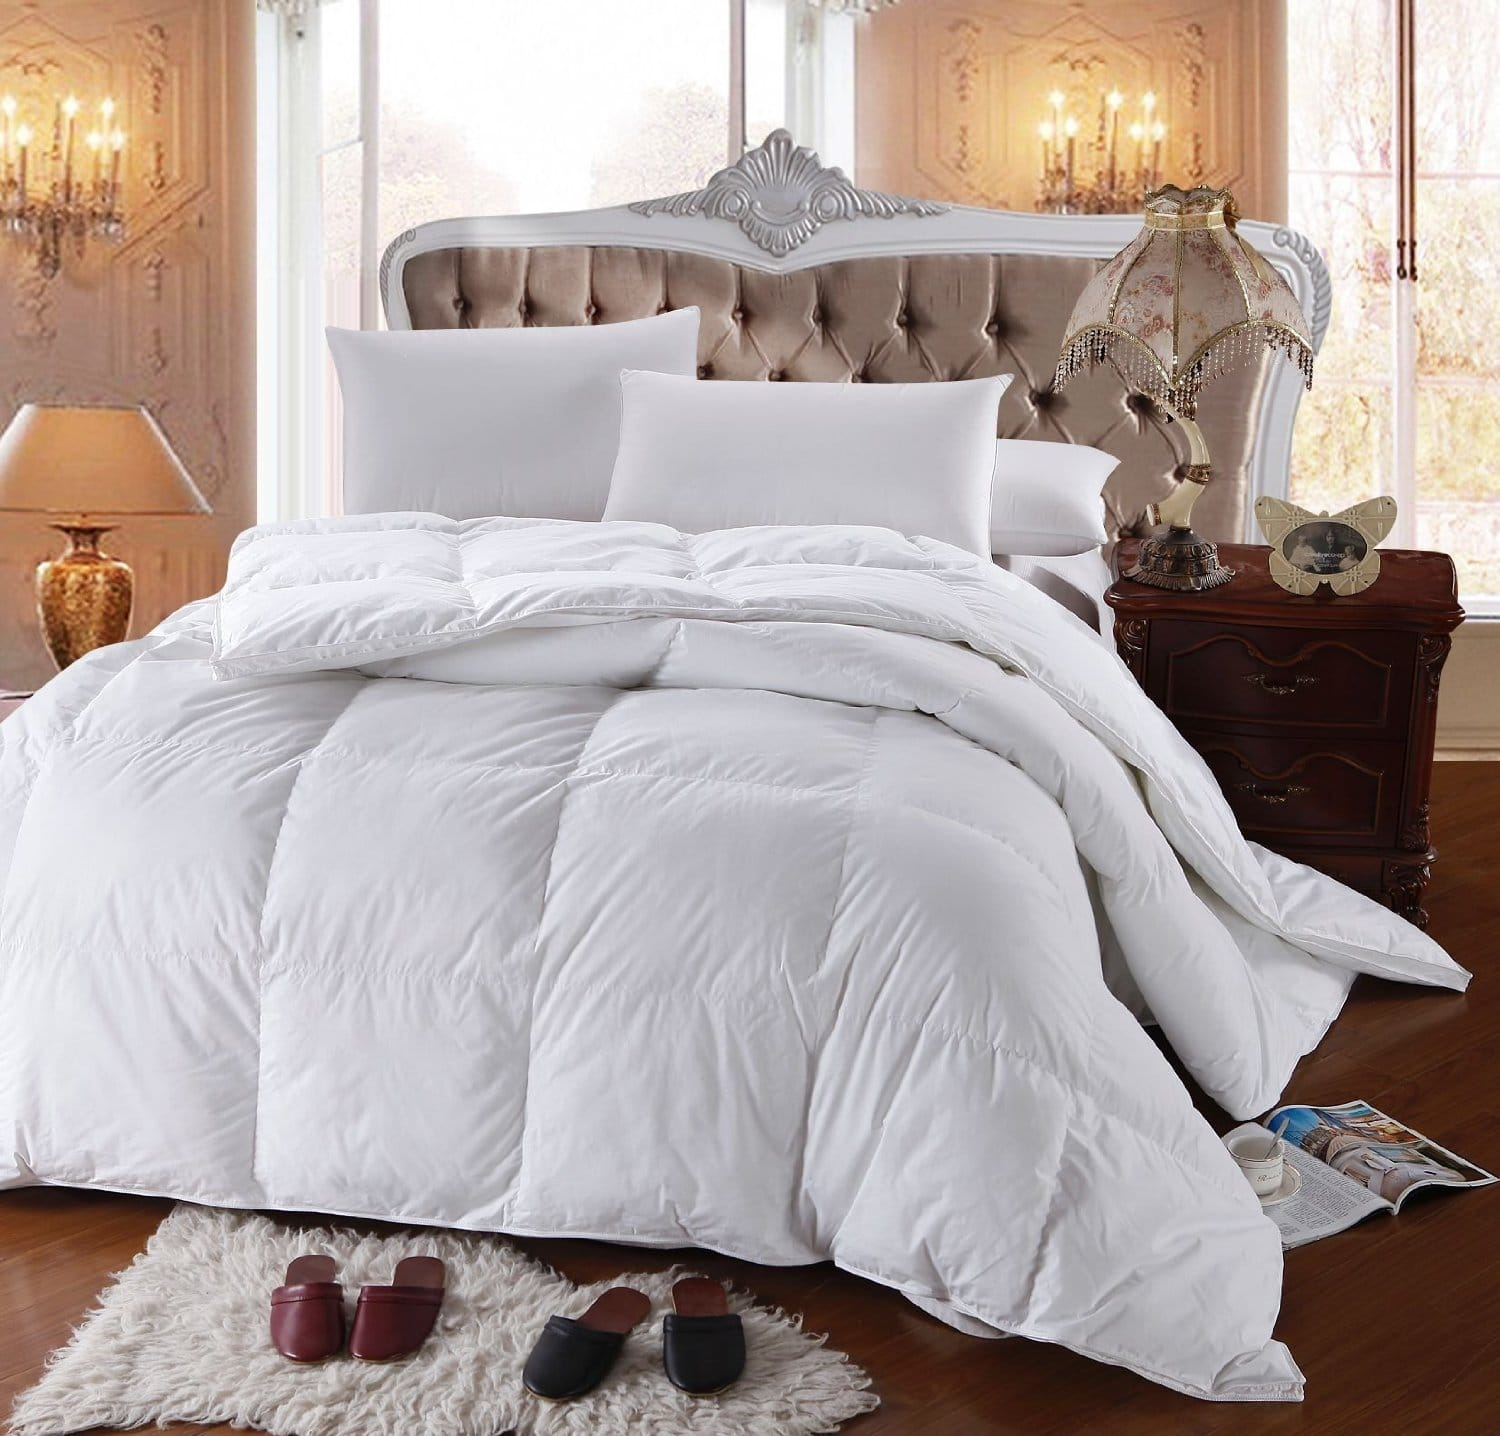 Best Down Alternative Comforters Reviews